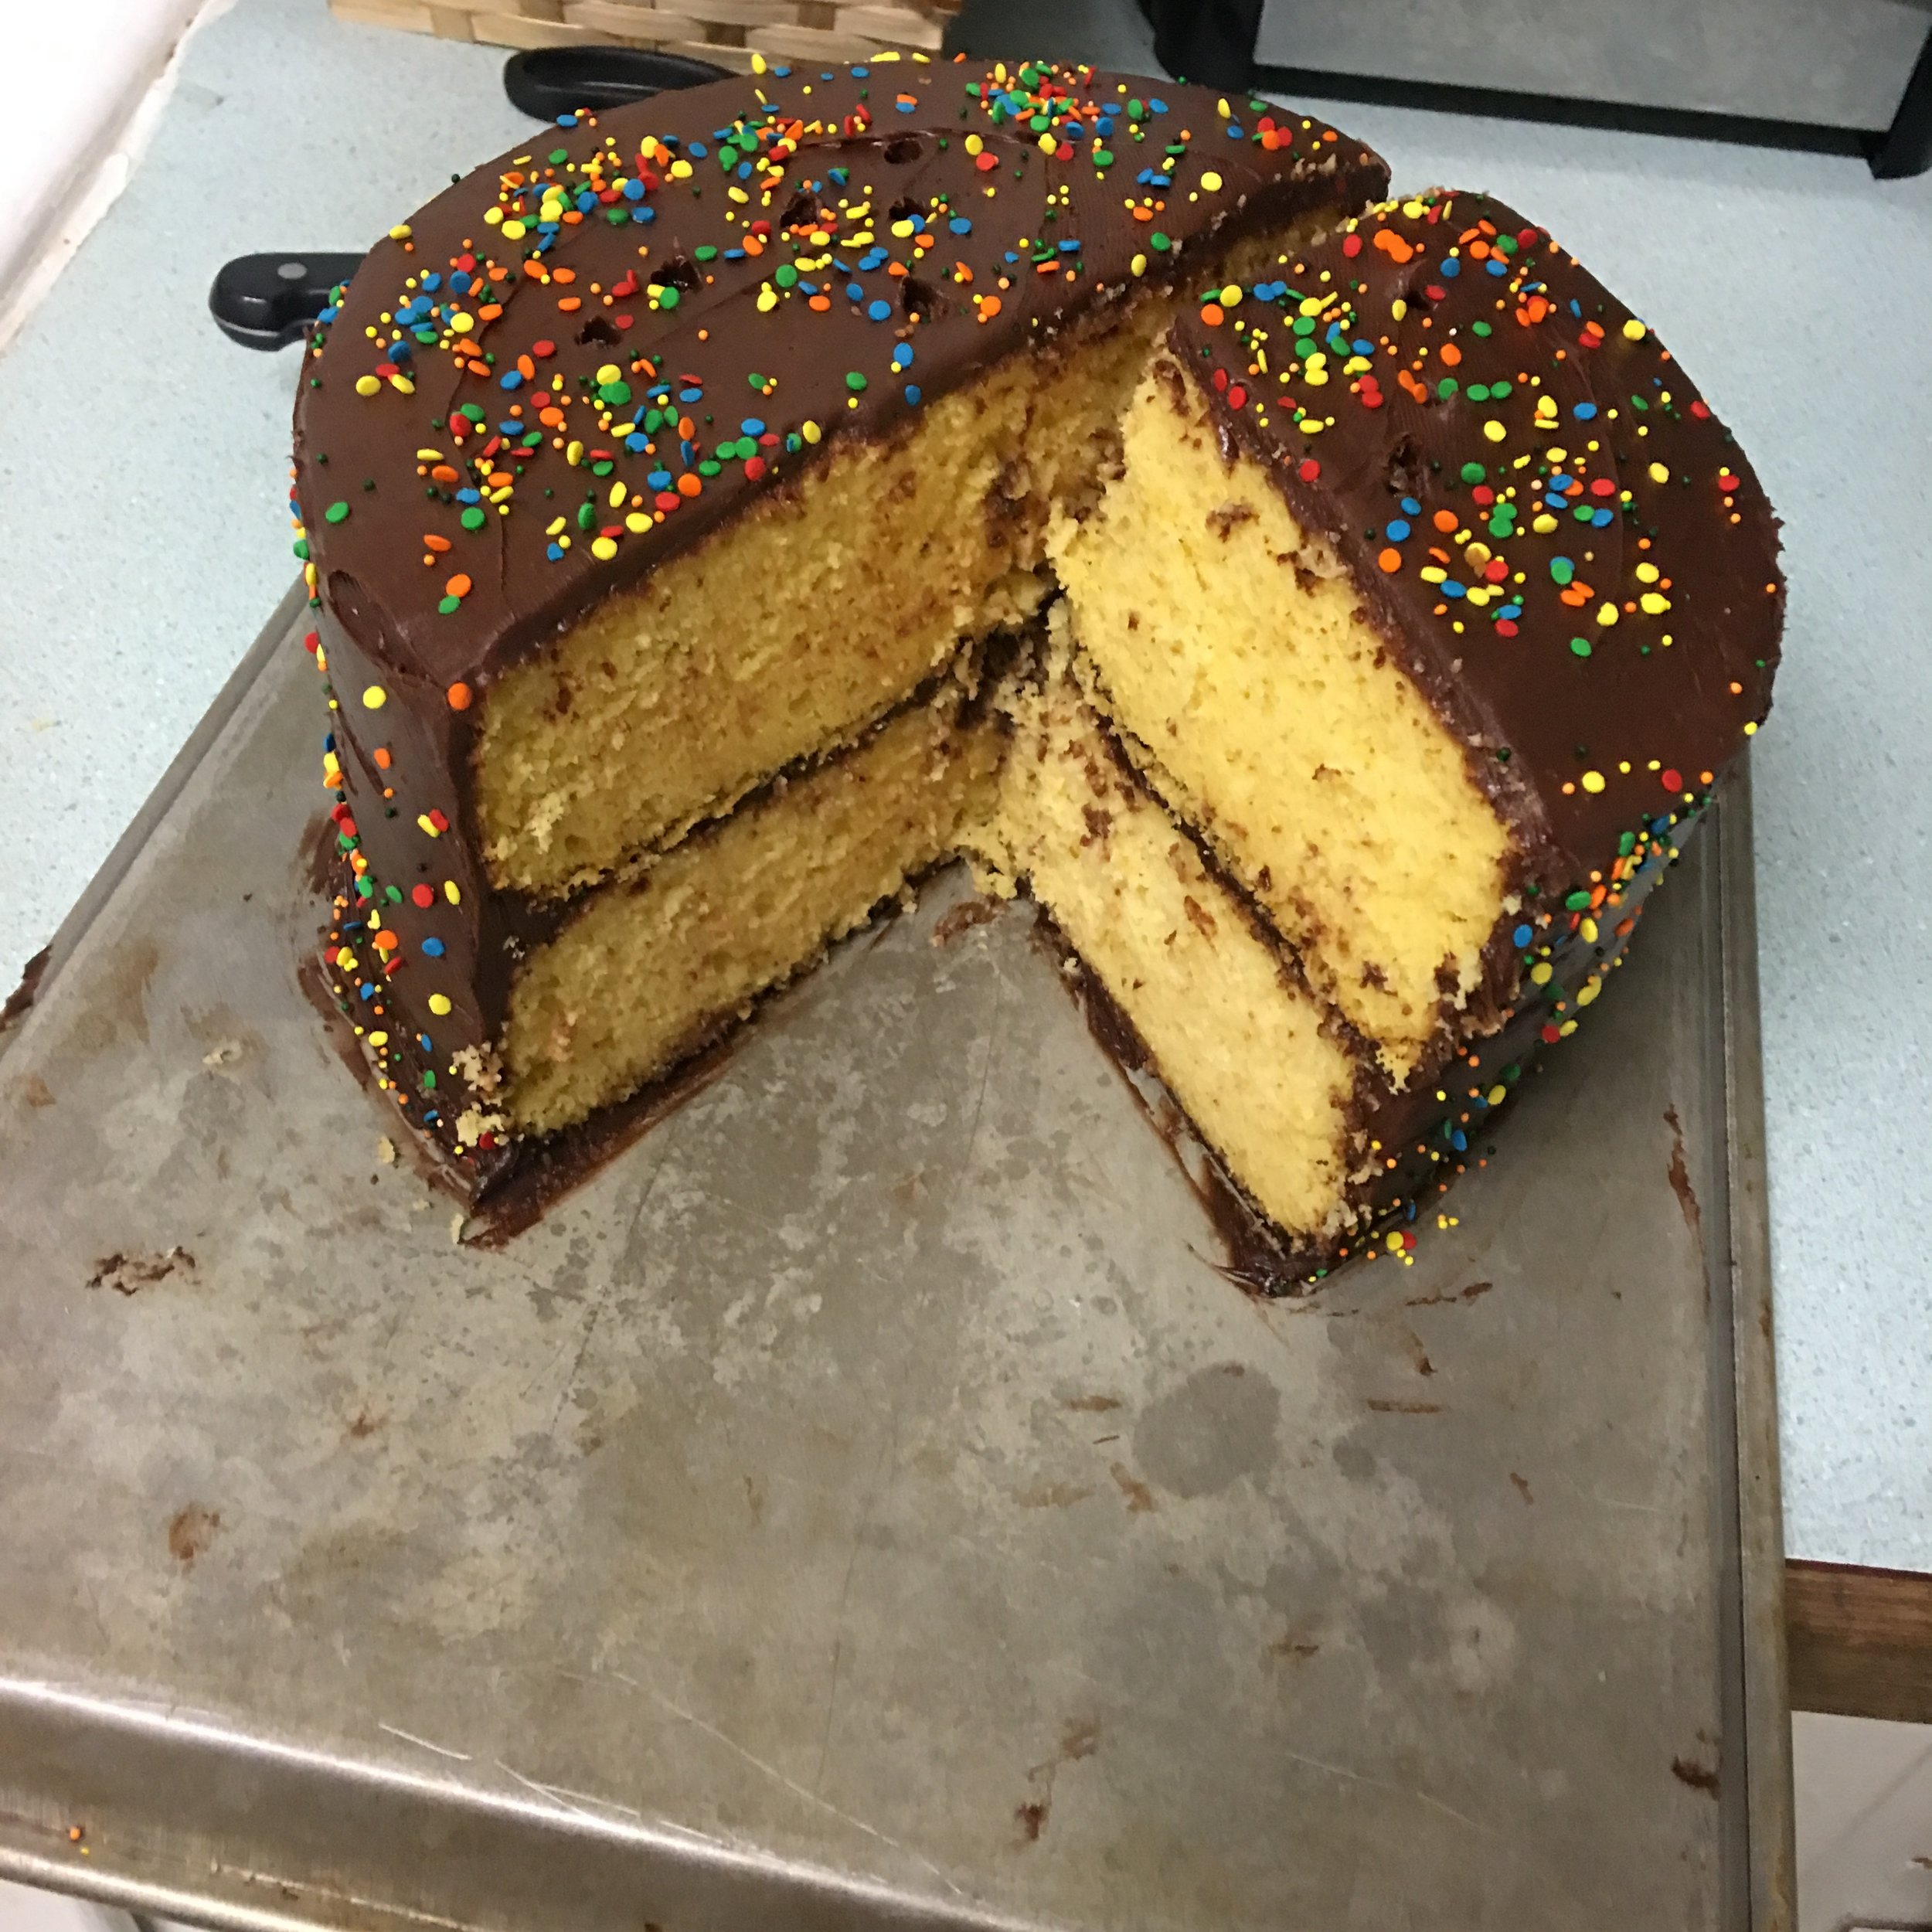 I got ambitious and made a two layered circle cake and it turned out better than I hoped! It was a lot bigger than I expected too :)